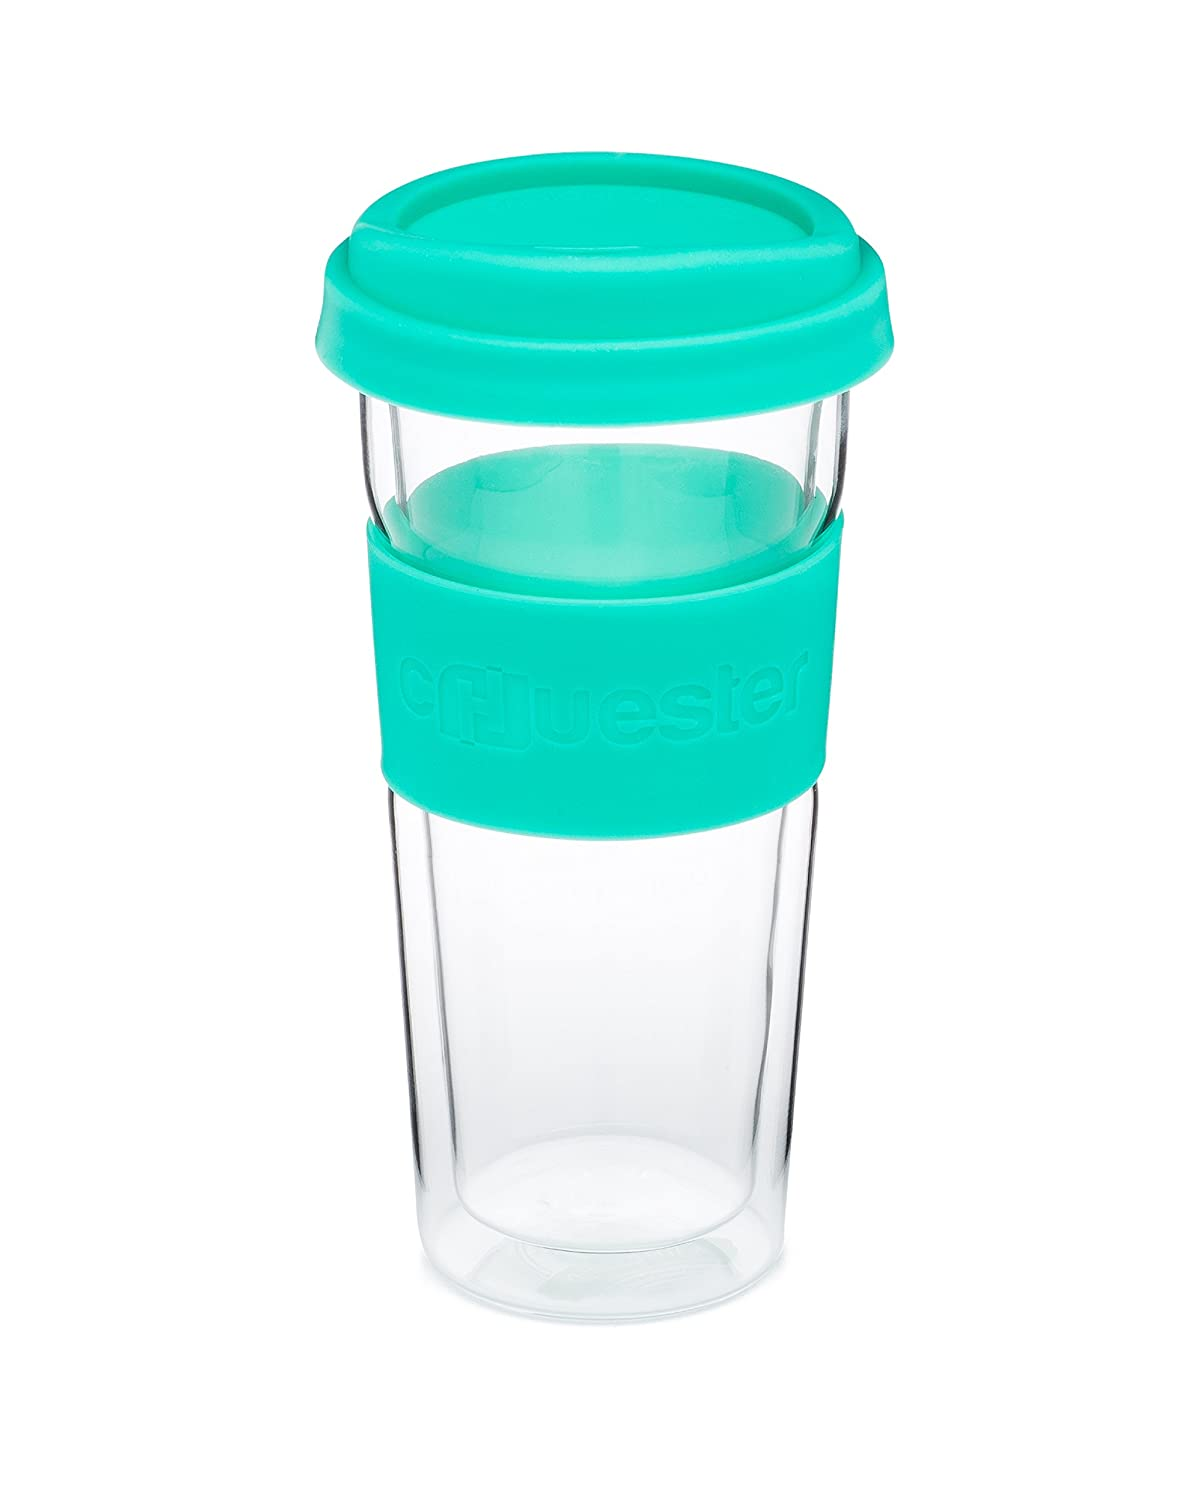 chuester oz doublewalled glass travel mug amazonca home  - chuester oz doublewalled glass travel mug amazonca home  kitchen